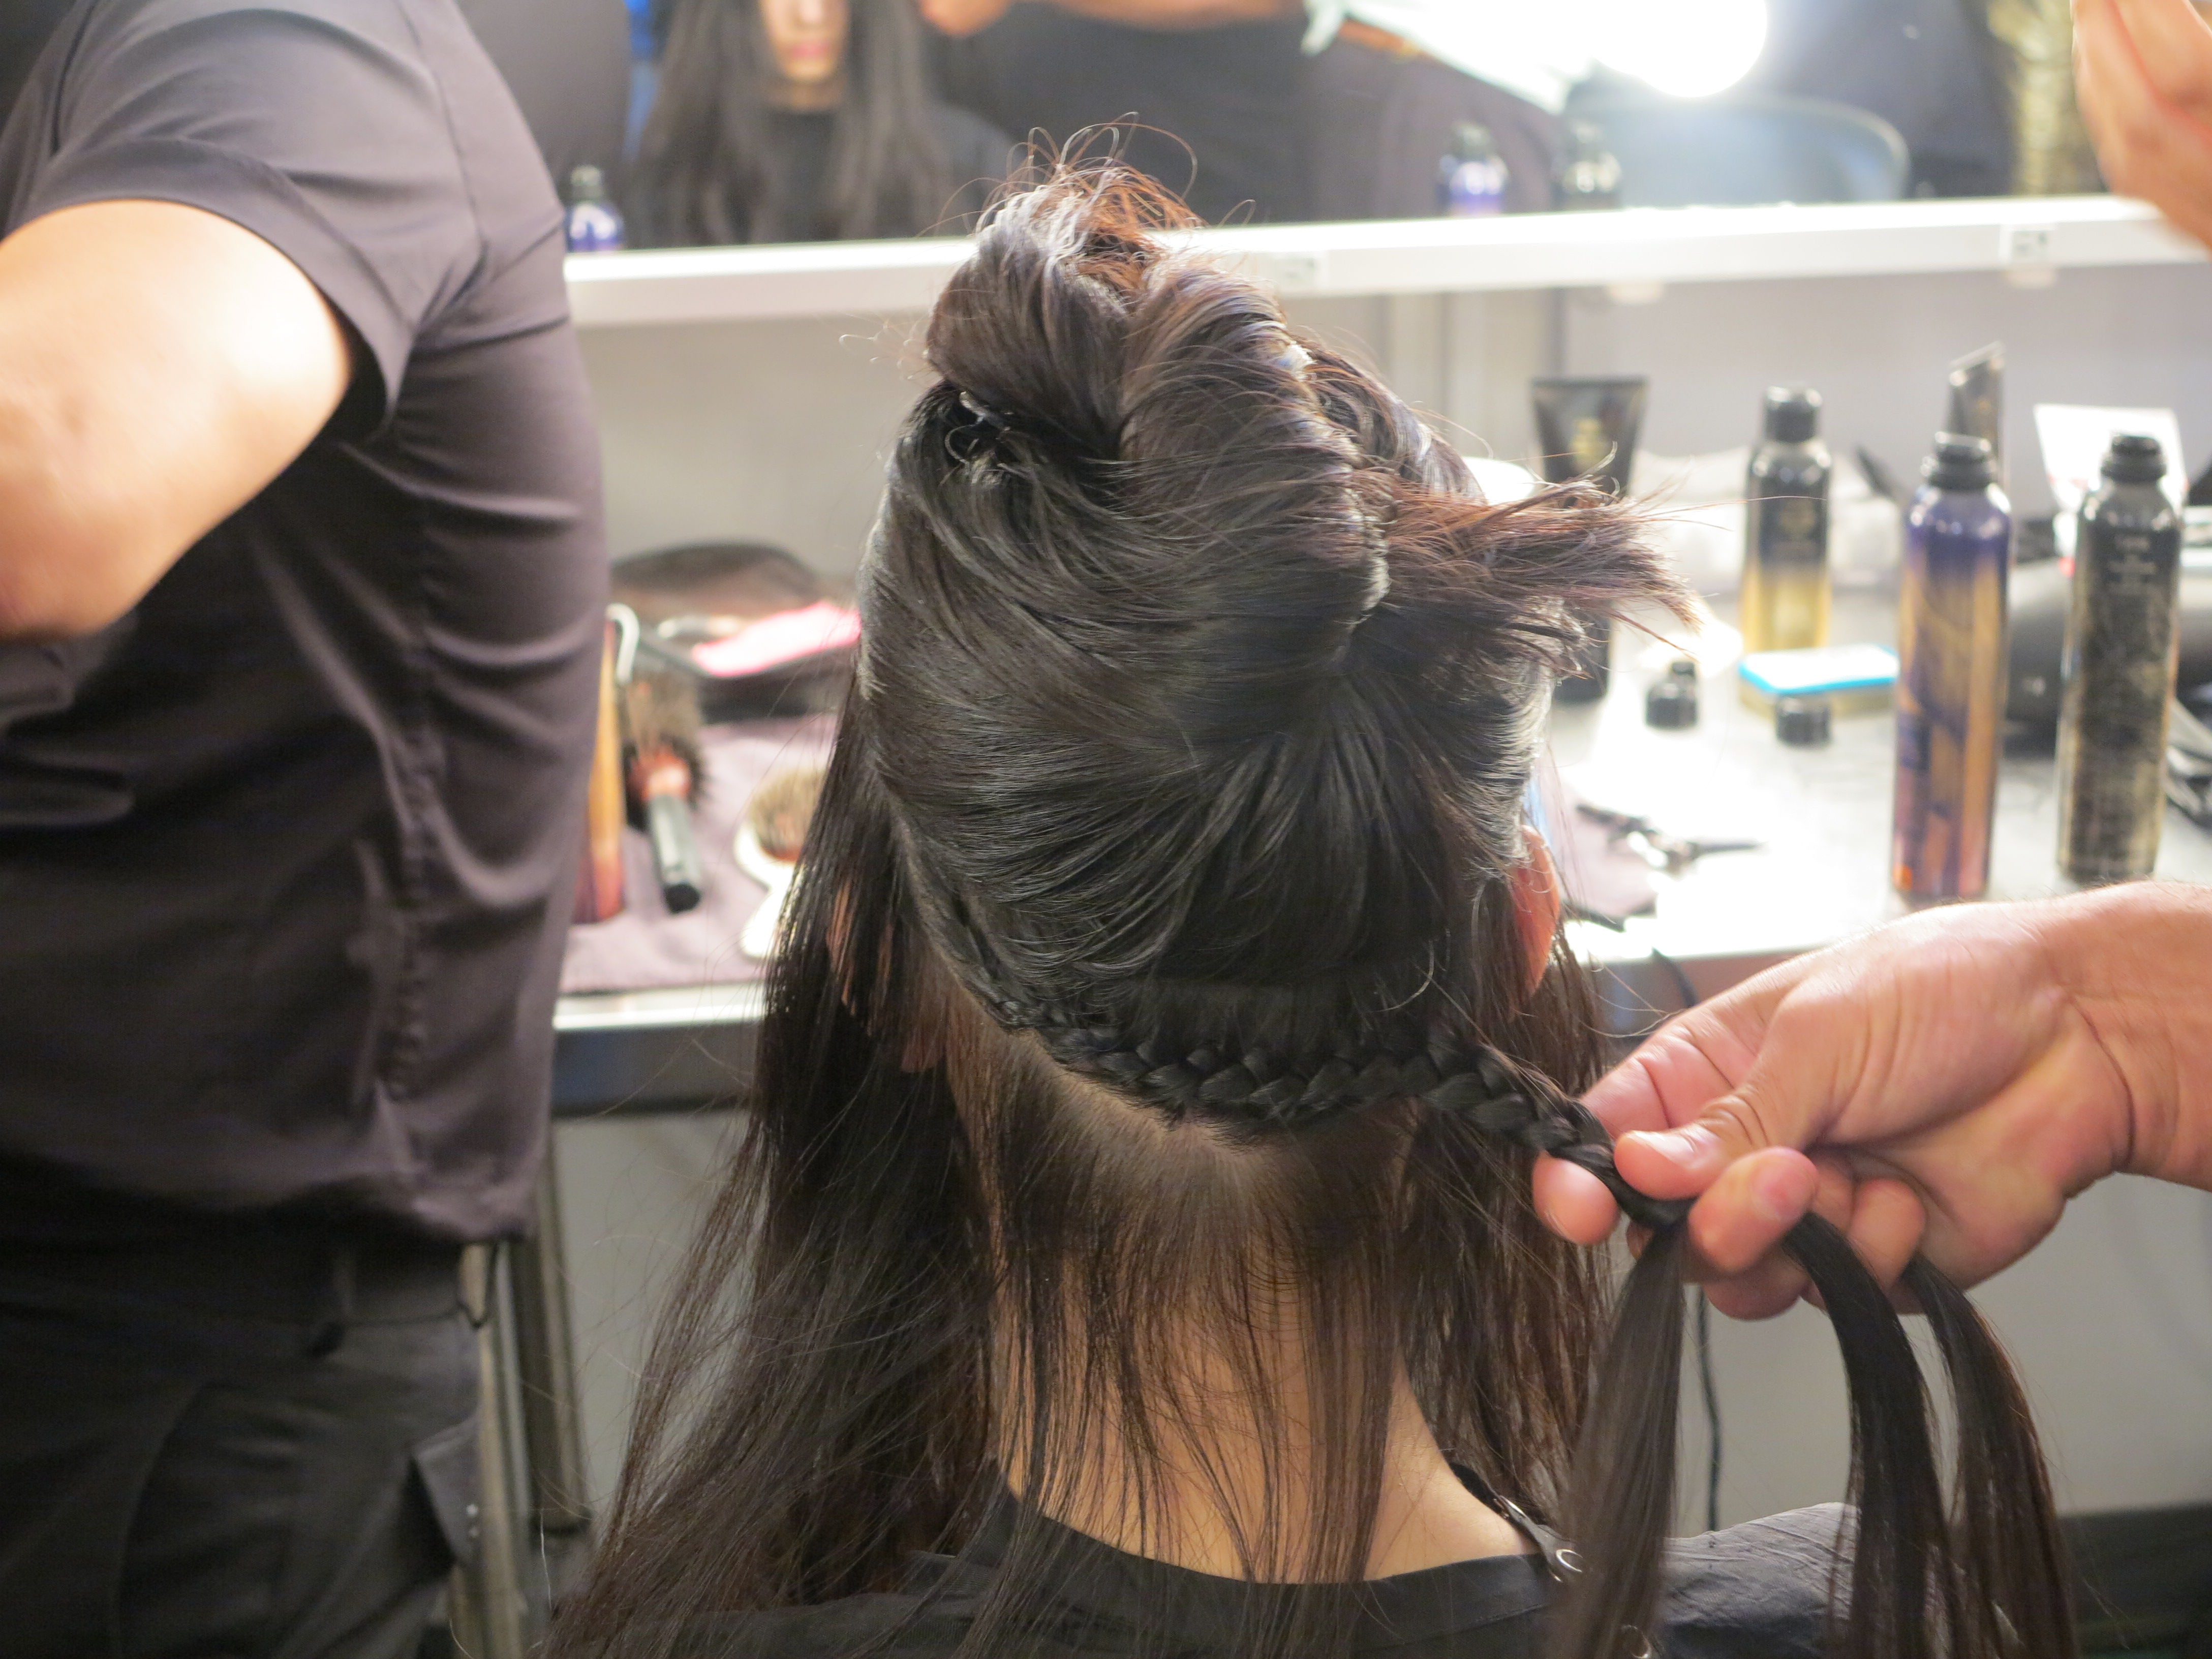 French braid created to sew hair to the head.